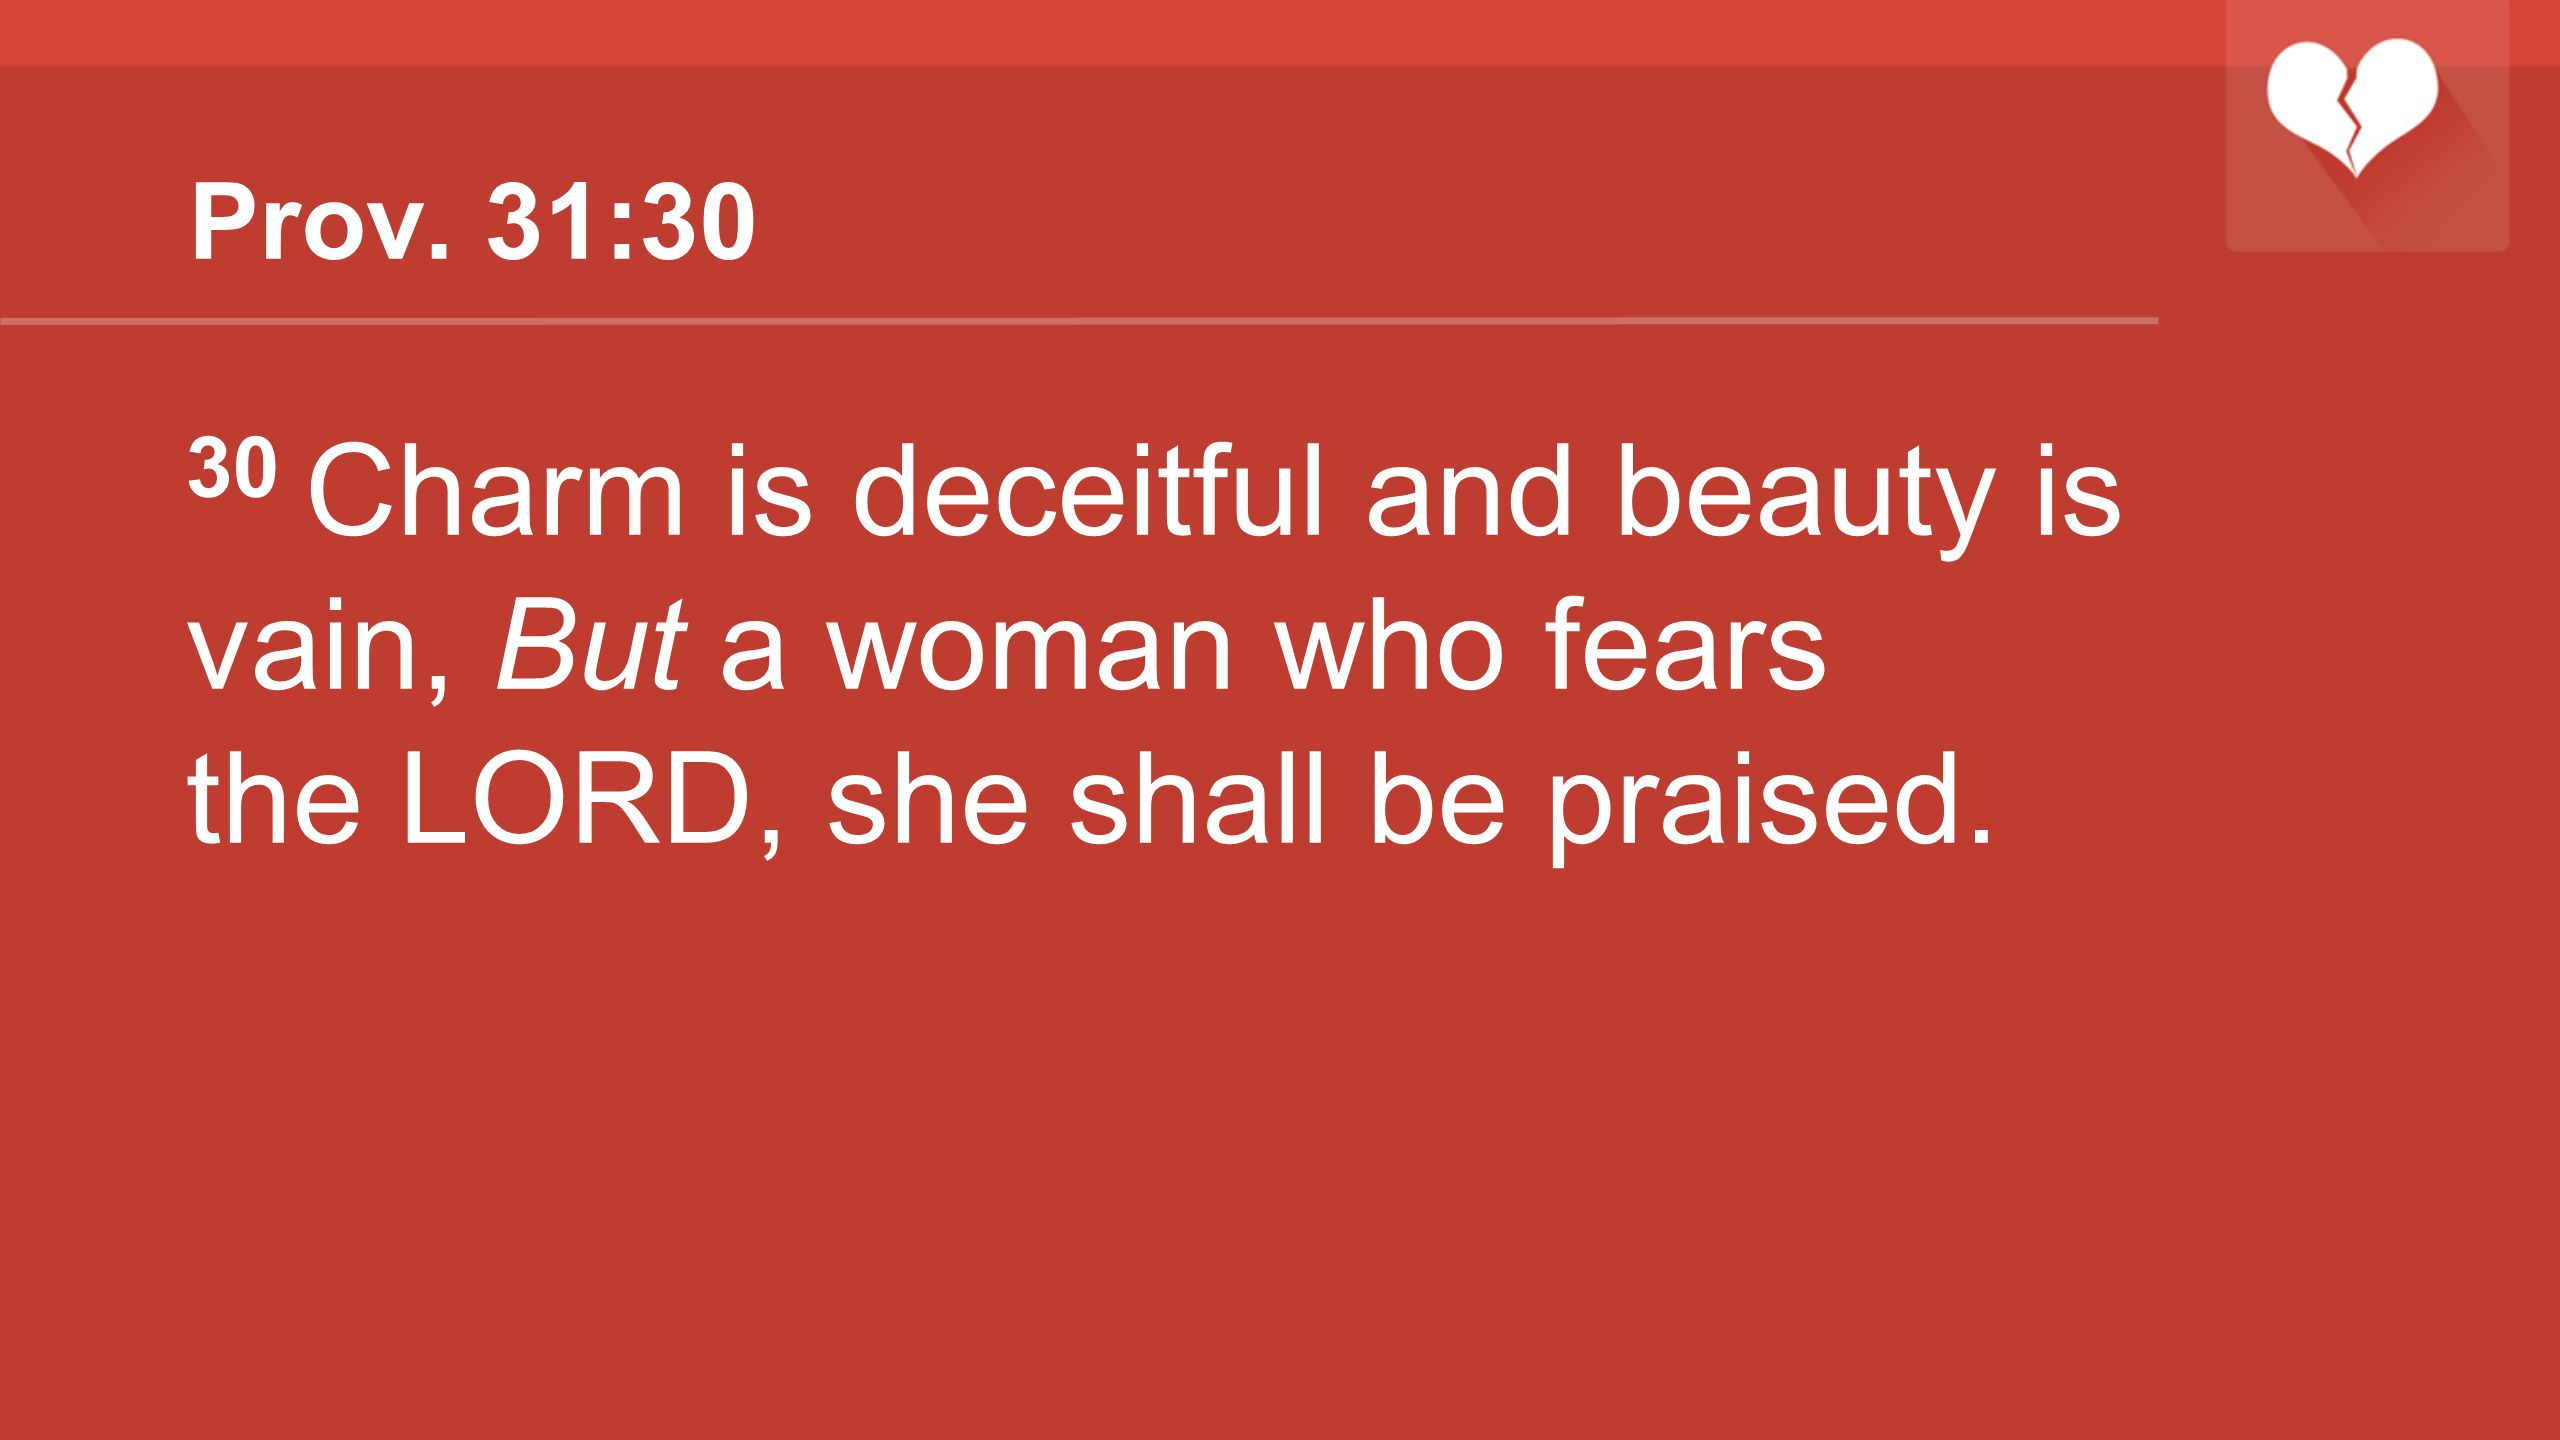 Prov. 31:30 30 Charm is deceitful and beauty is vain, But a woman who fears the LORD, she shall be praised.